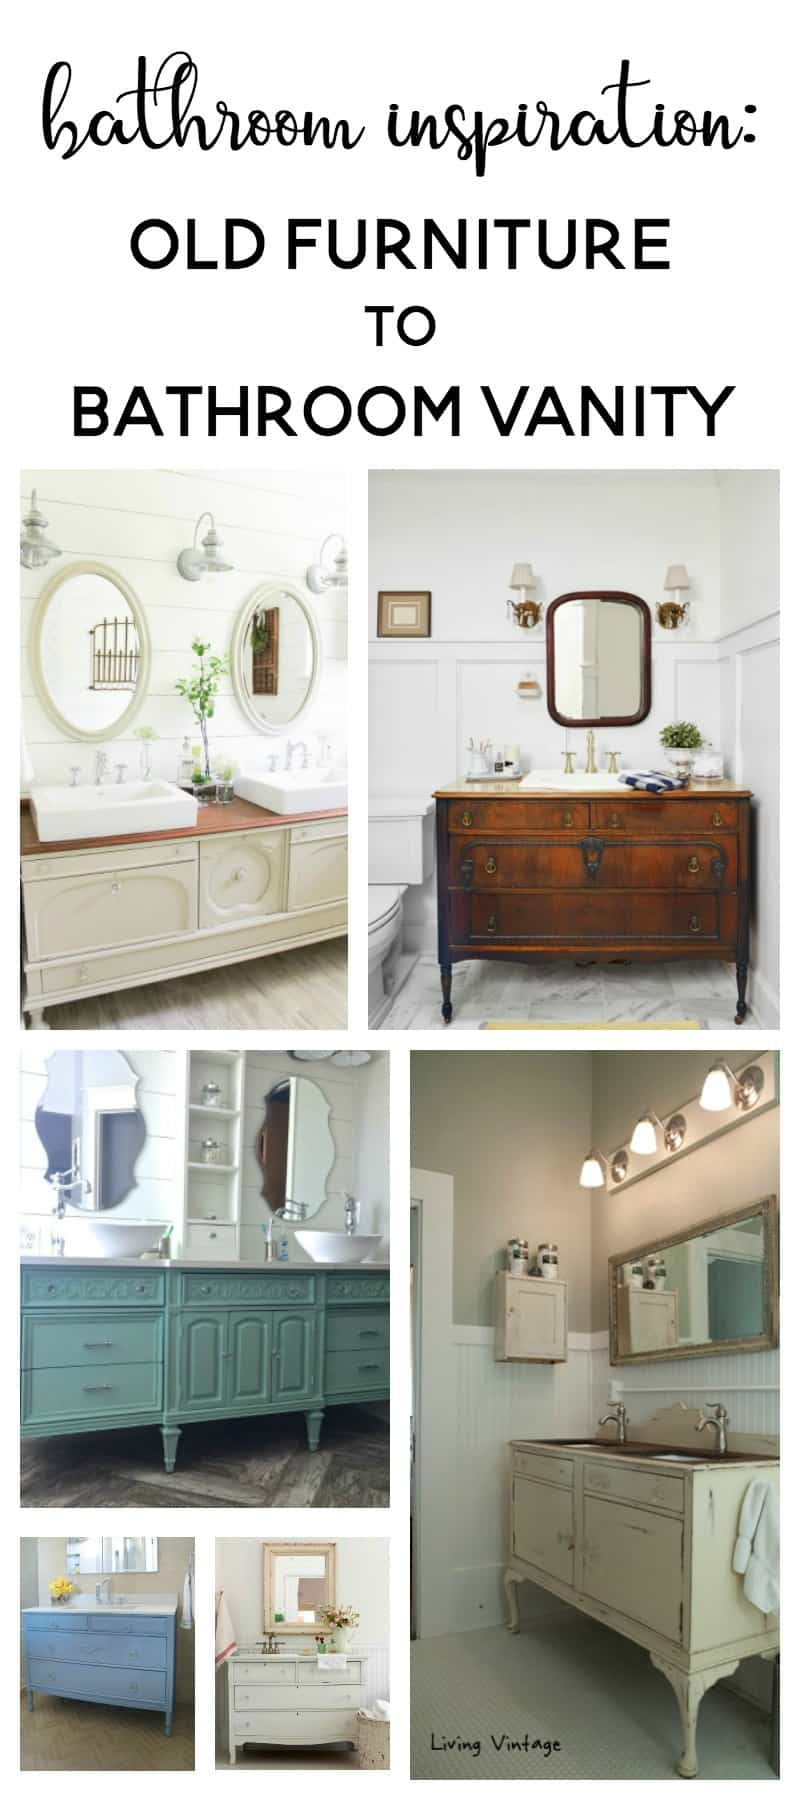 Bathroom Ideas | Bathroom Remodel | Bathroom Vanity | Bathroom Vanity Ideas  | Bathroom Vanity Diy